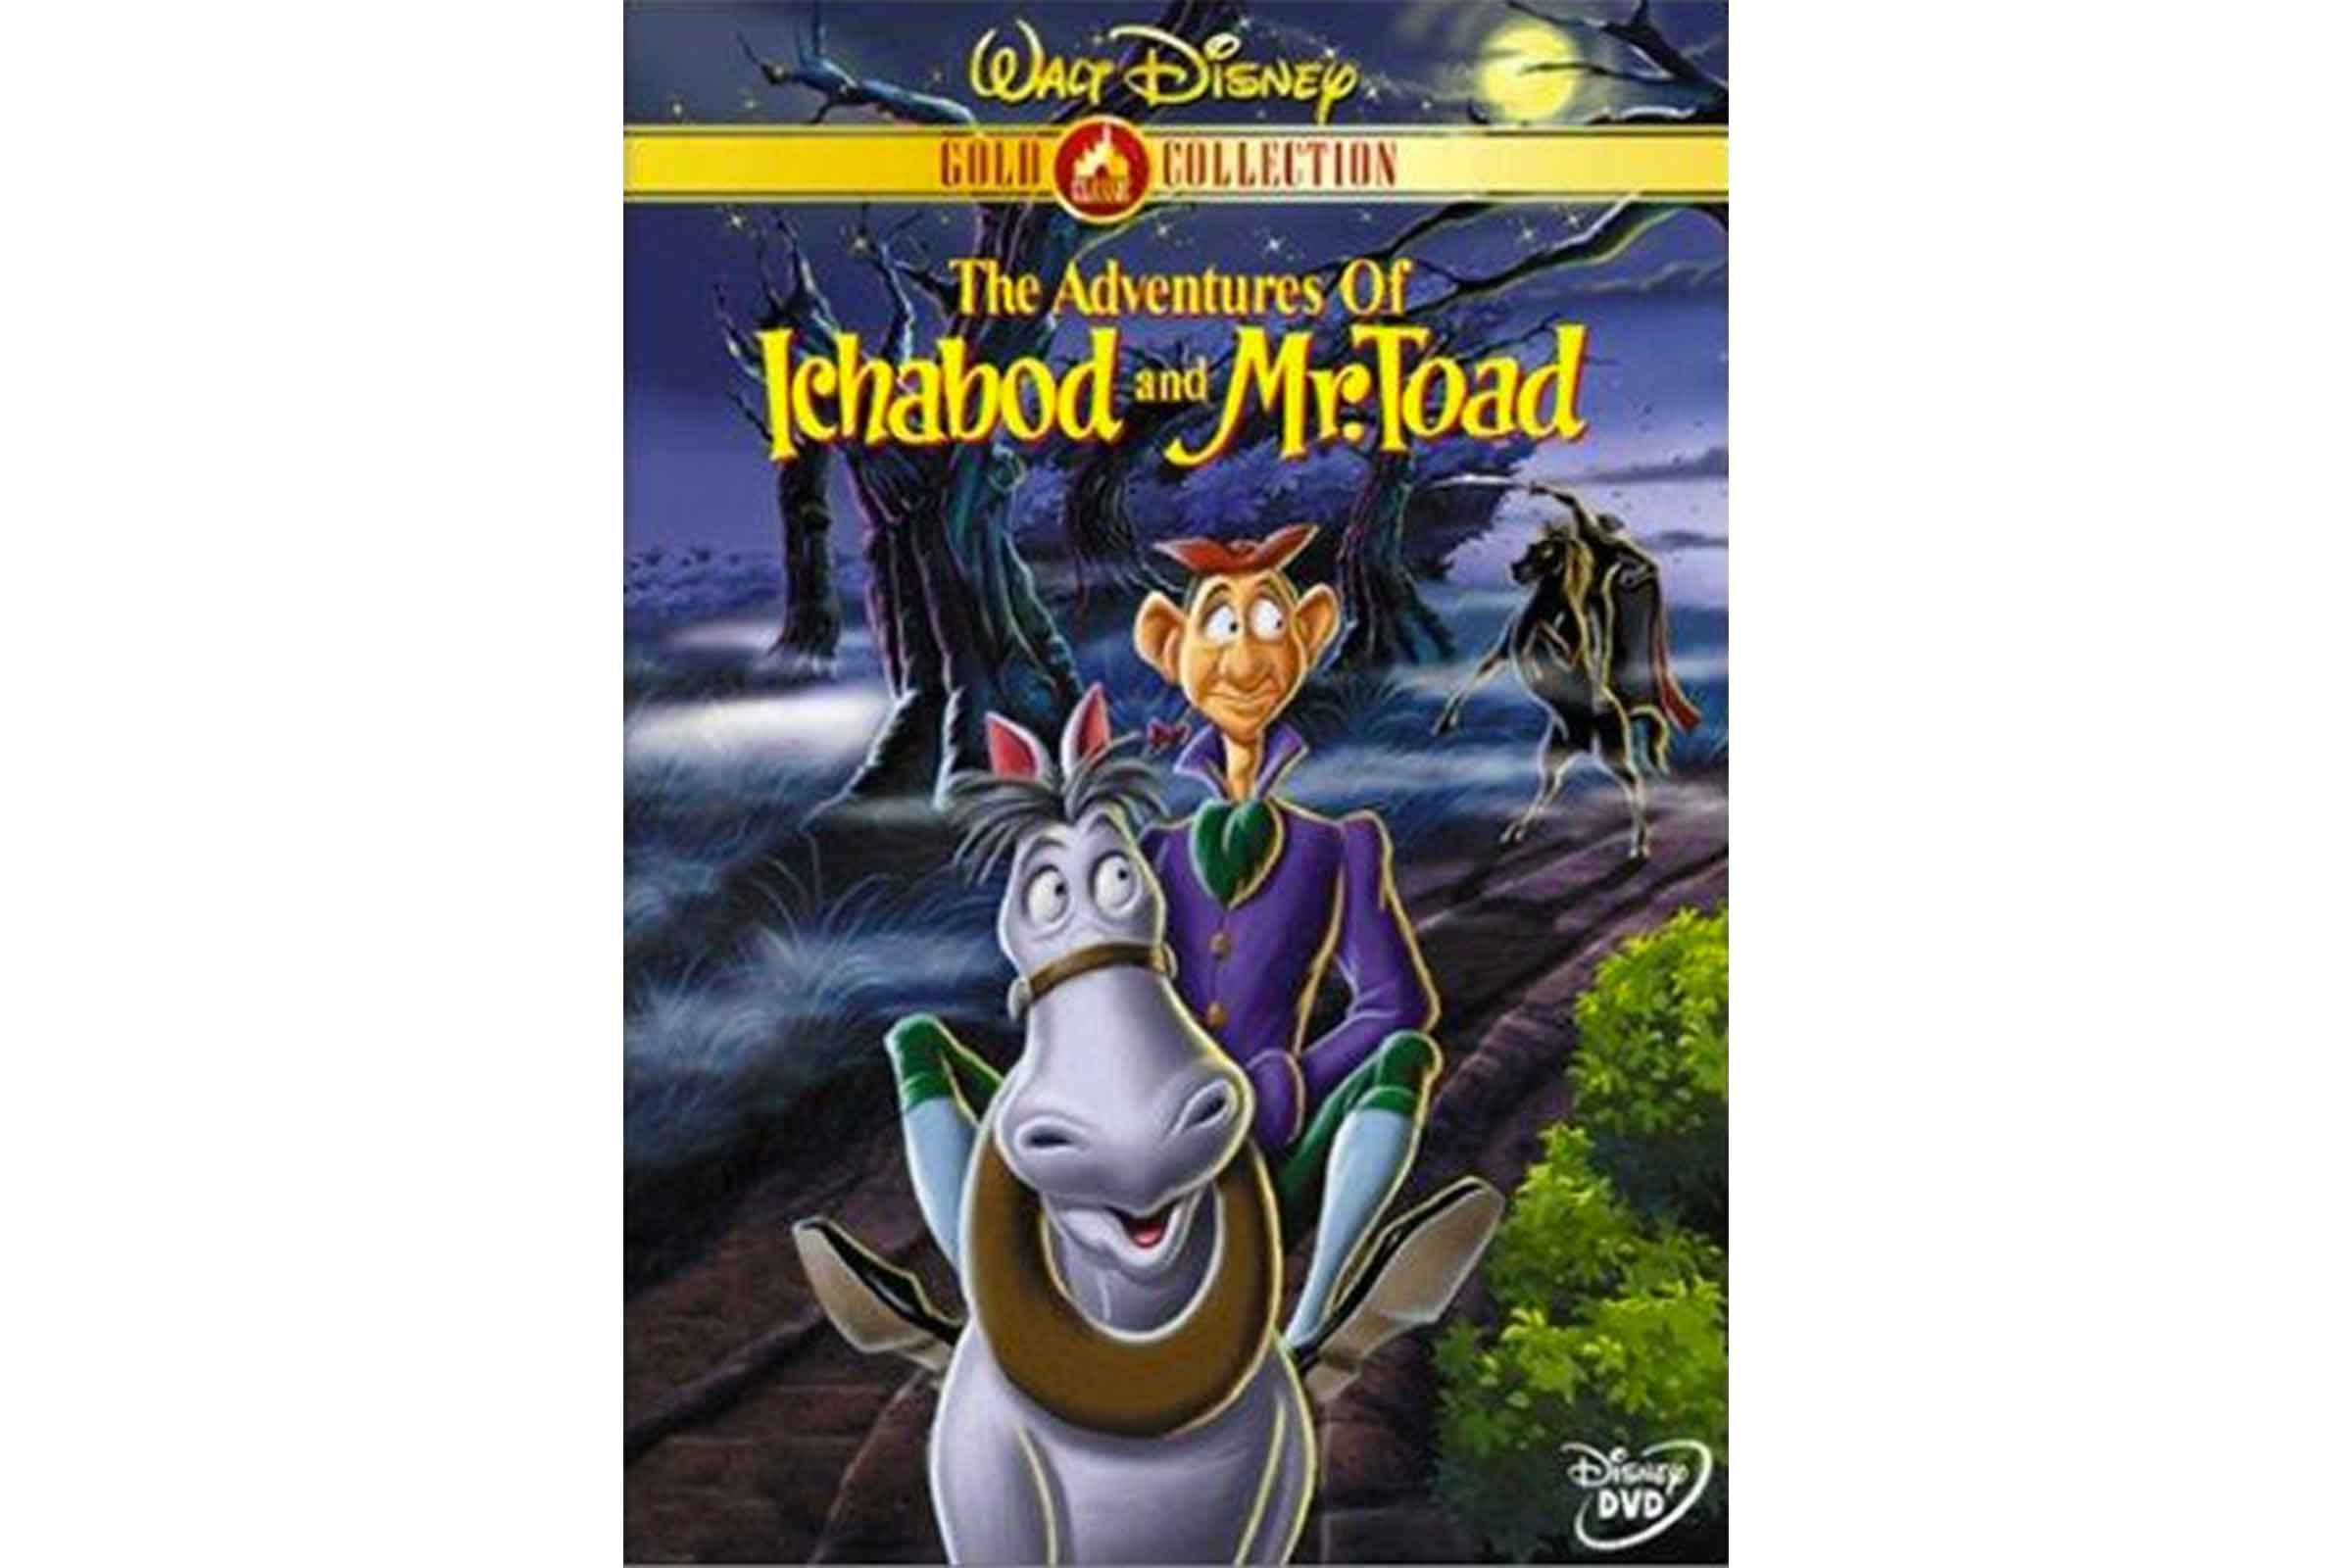 The Adventures of Ichabod and Mr. Toad (G)